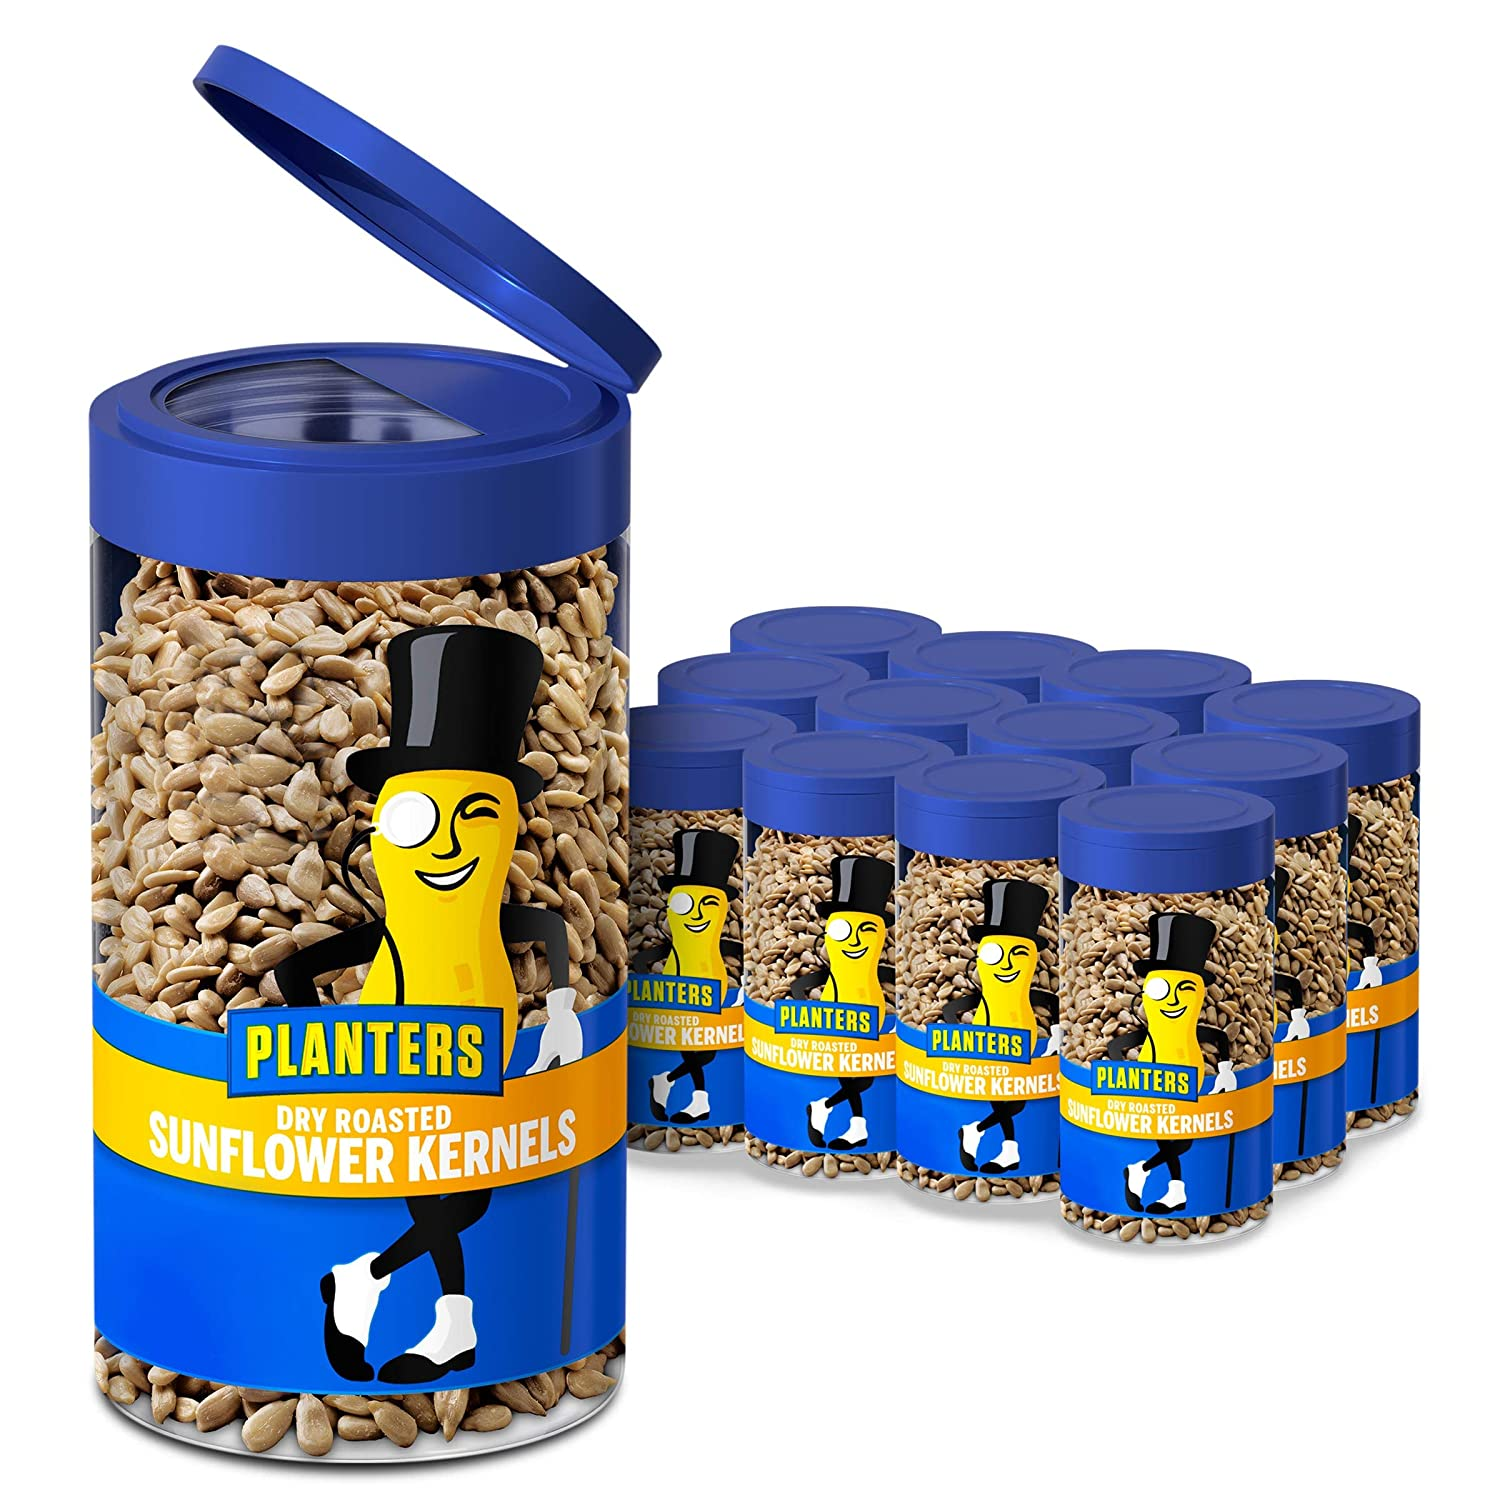 PLANTERS Pop & Pour Dry Roasted Sunflower Kernels 5.85 oz Jar (Pack of 12) - Portable Snack for Easy Snacking - Alternative to Sunflower Seeds - Great After School Snack or Movie Snacks - Kosher